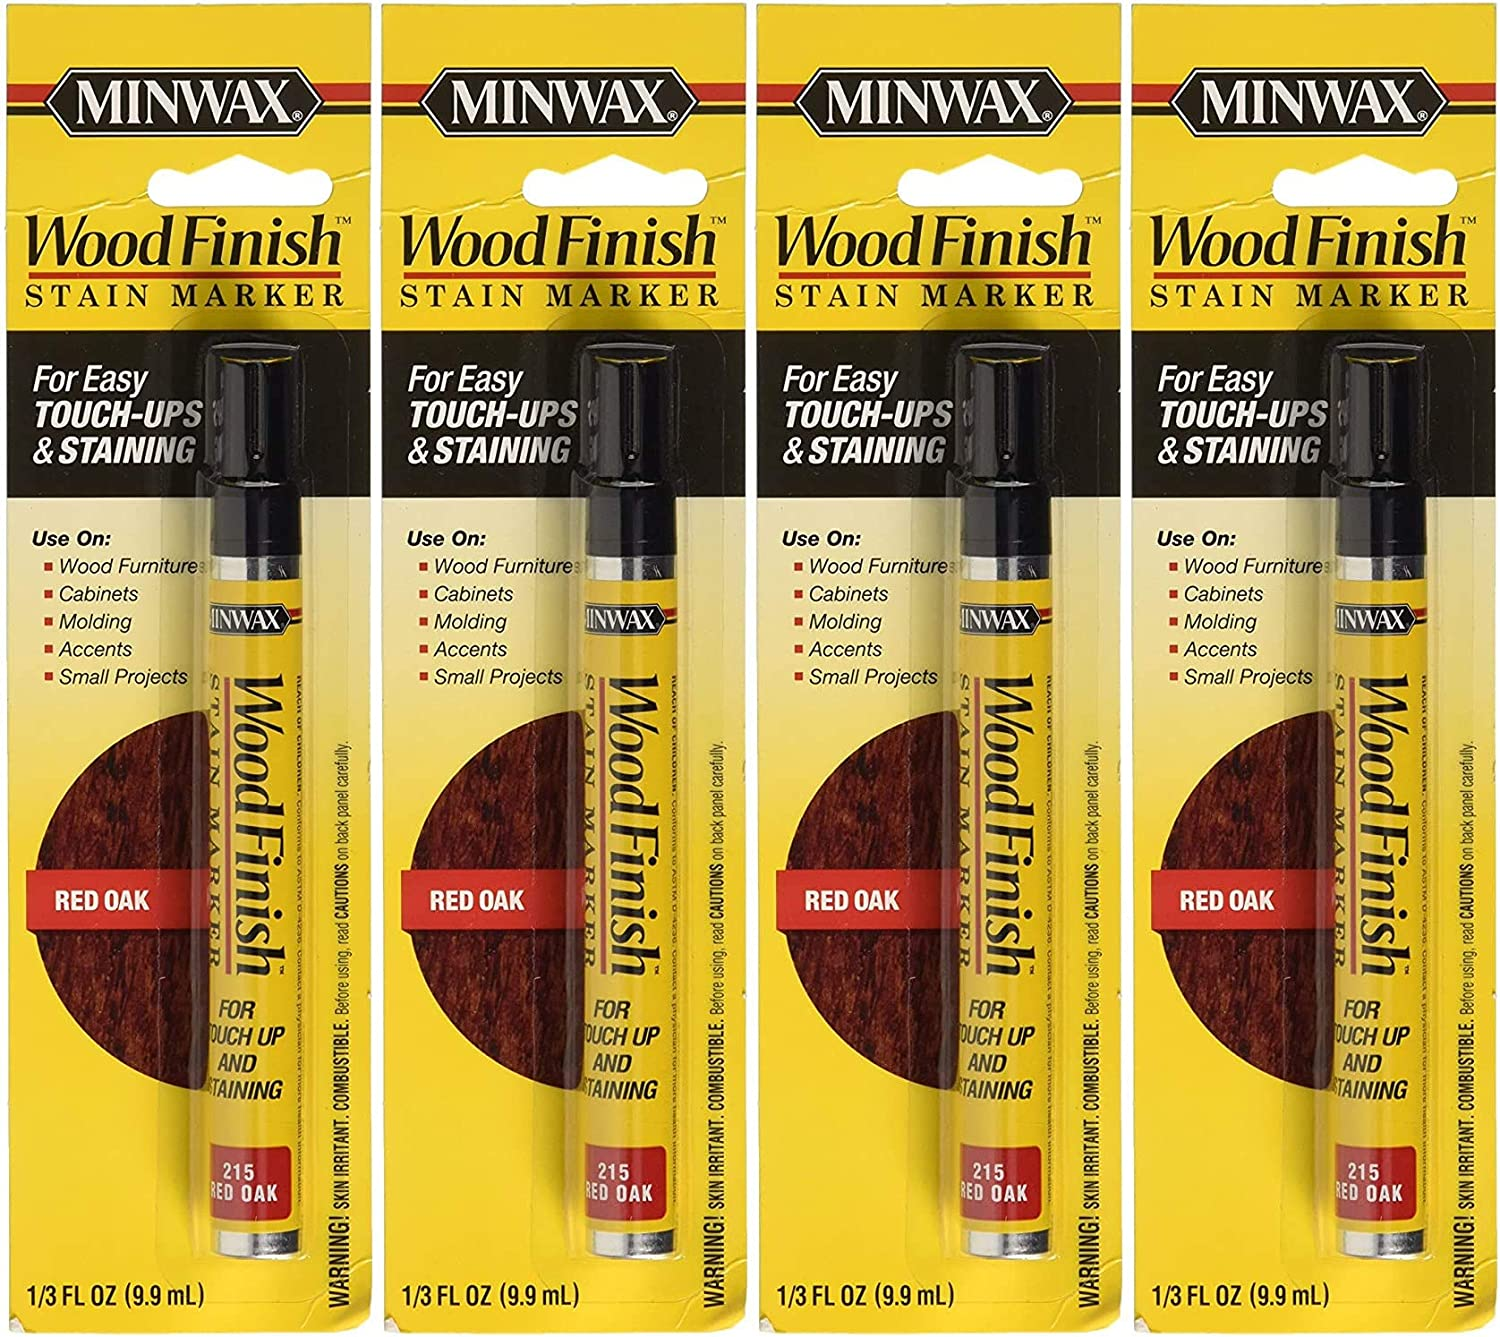 Minwax 63483000 Wood Finish Stain Marker San Jose Mall Pack Red Oak Clearance SALE! Limited time! 4